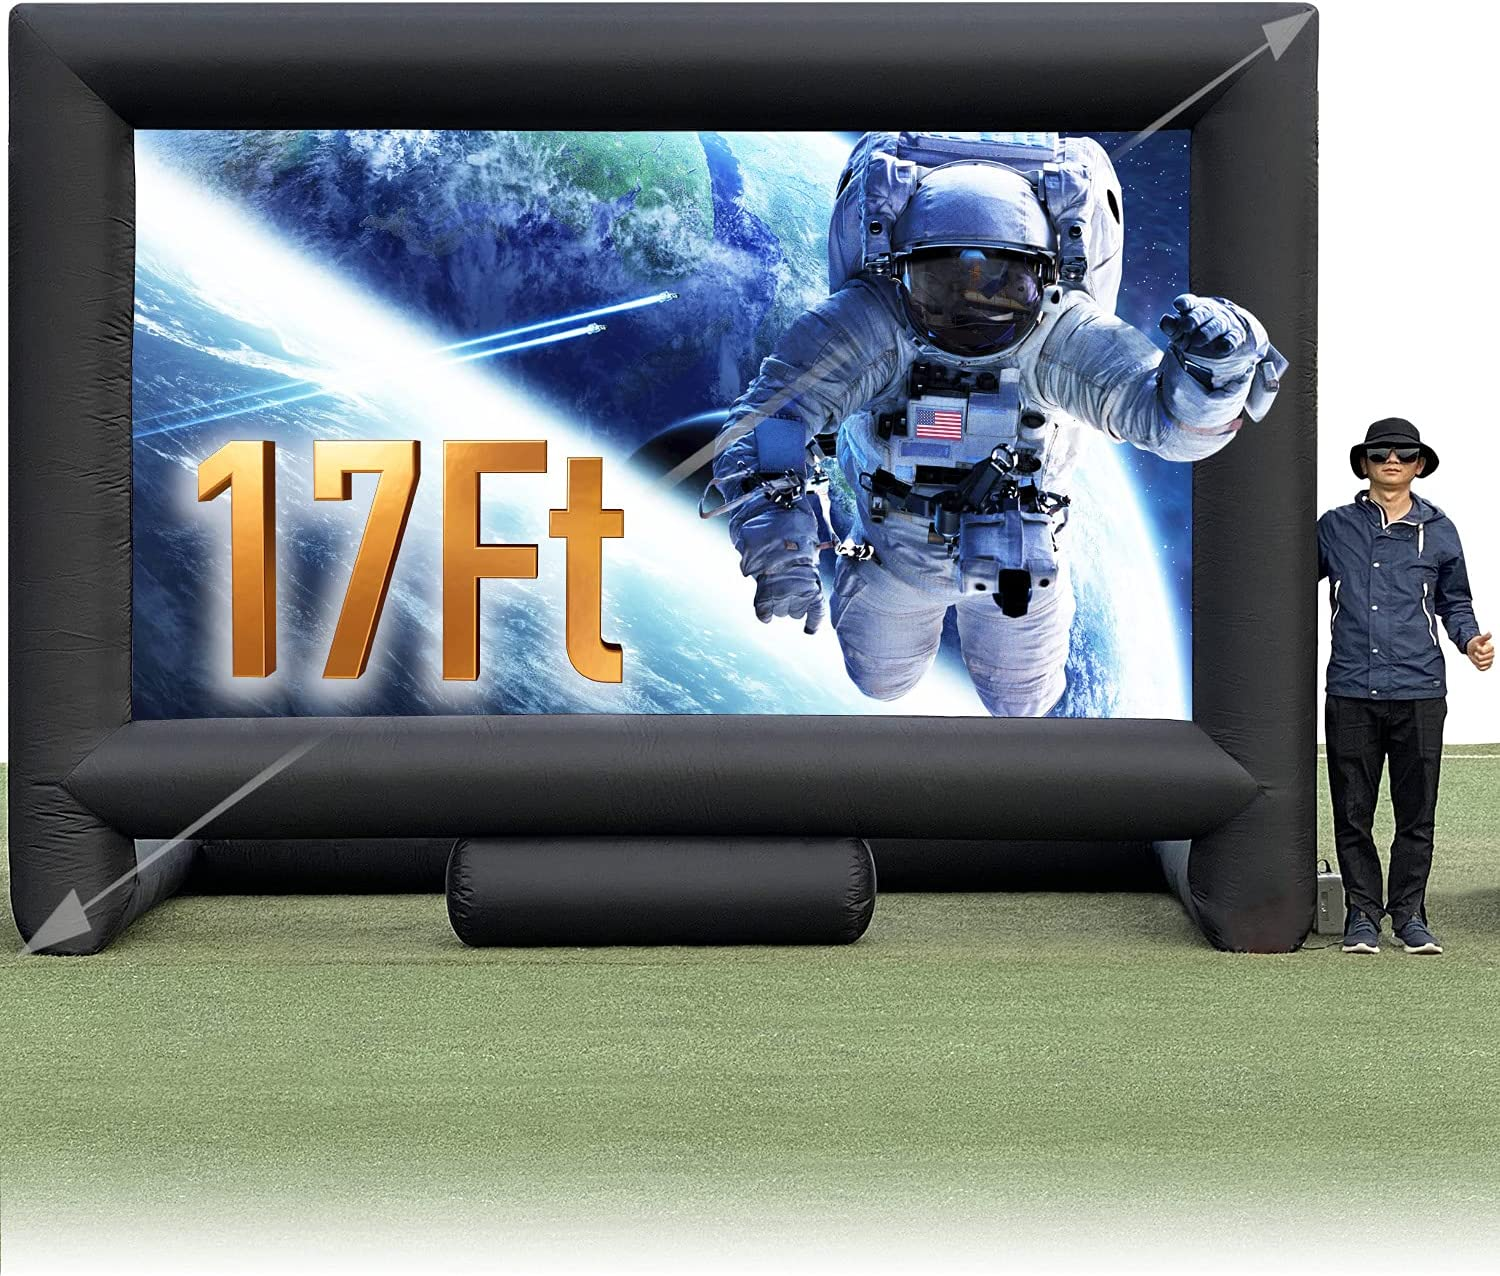 Sewinfla 17Ft Outdoor and Indoor Inflatable Movie Projector Screen with Blower, Supports Front and Rear Projection, Blow Up Mega Movie Screen for Party, Easy to Set Up